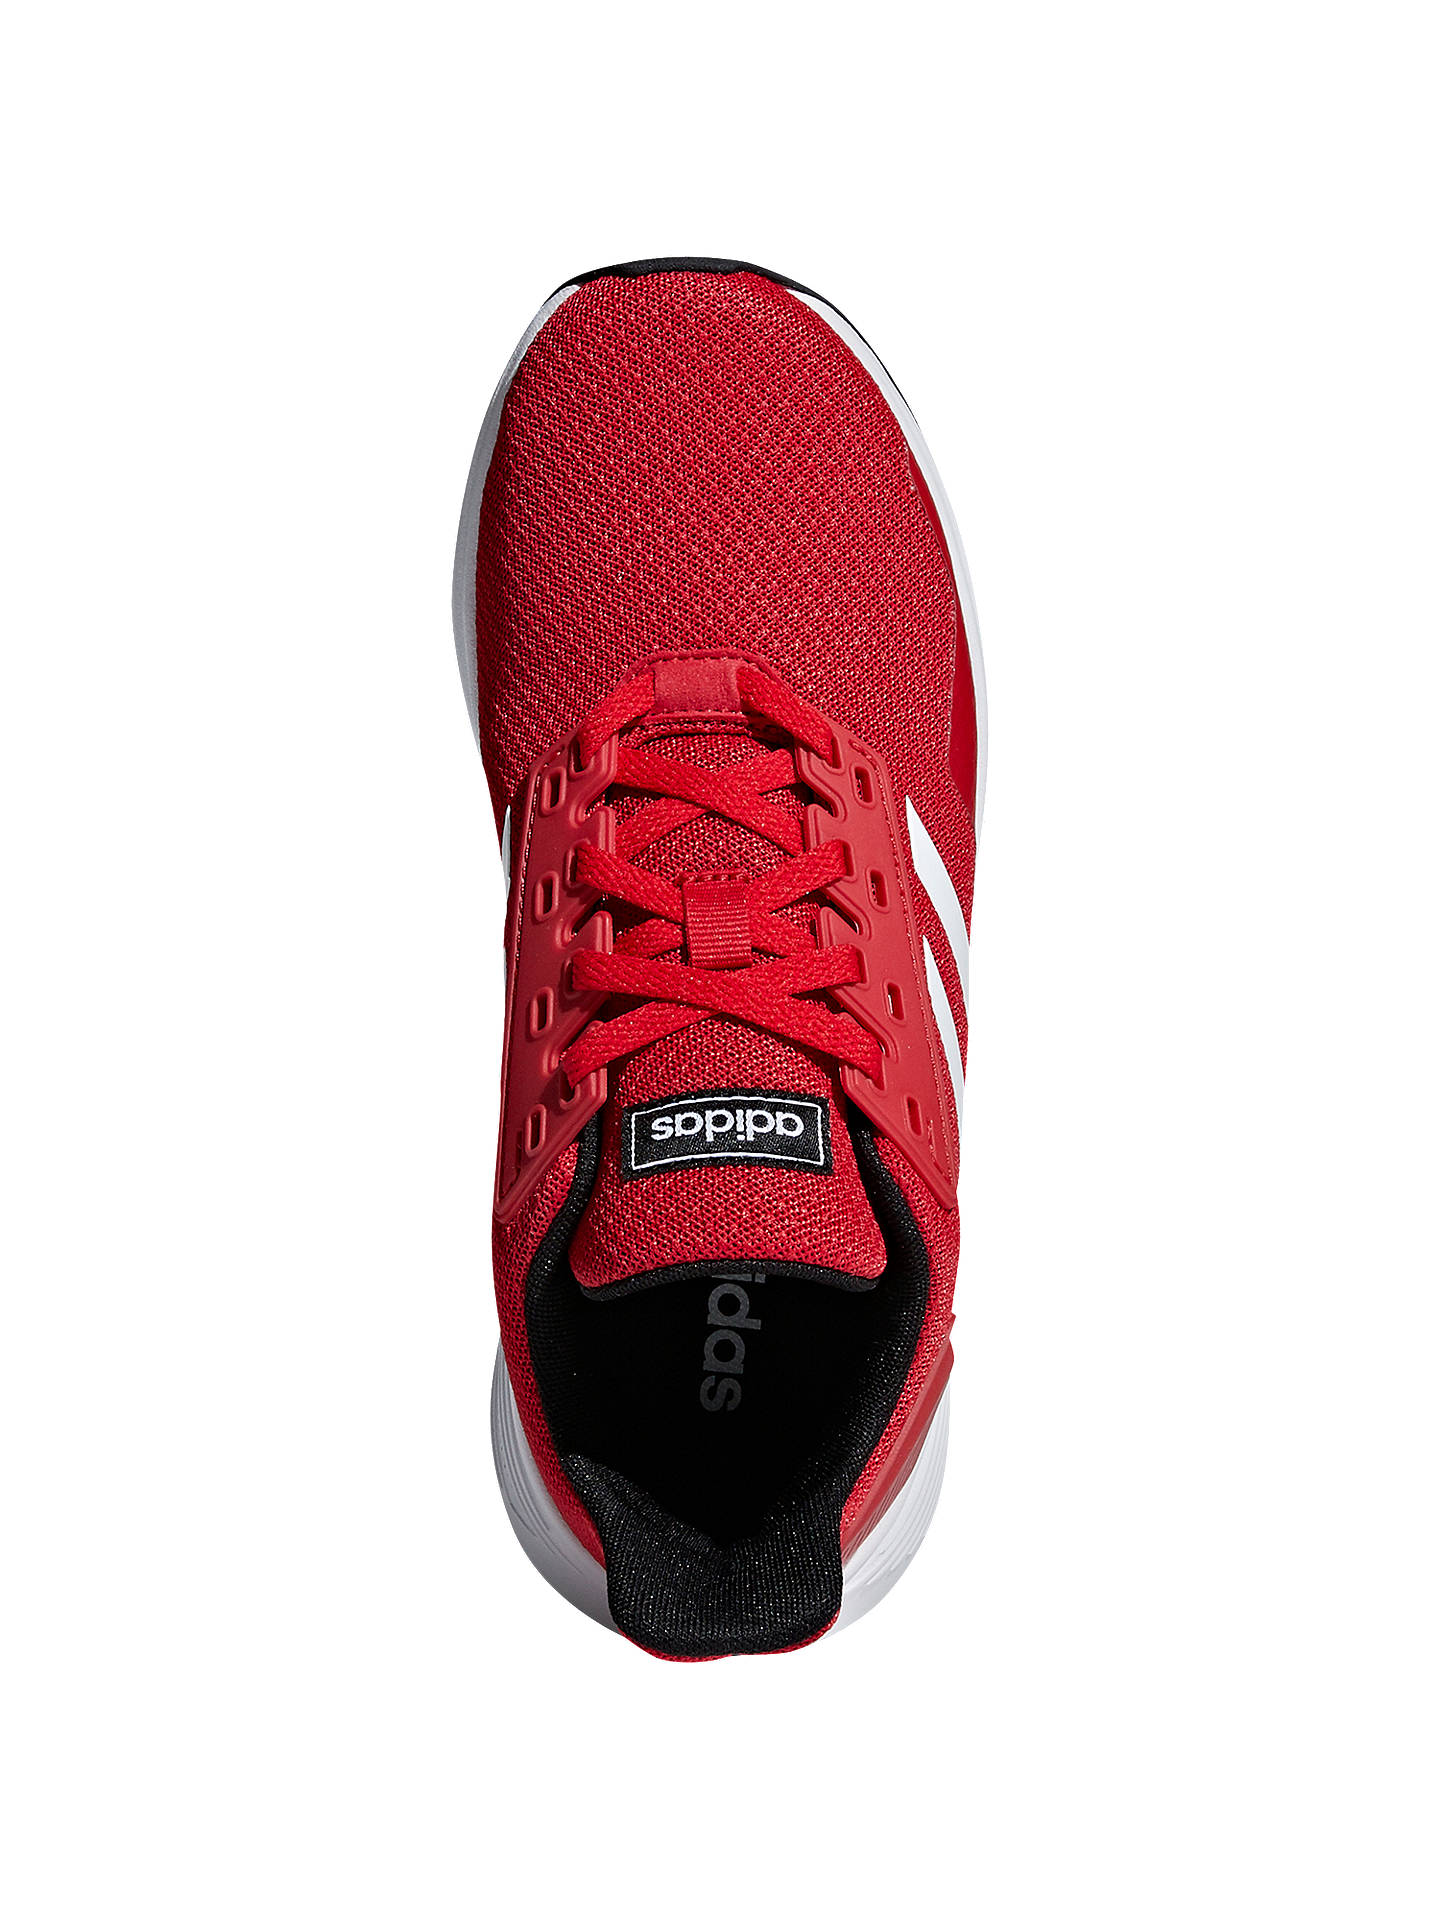 5d25790db581d adidas Children's Duramo 9K Lace Up Sports Trainers at John Lewis ...